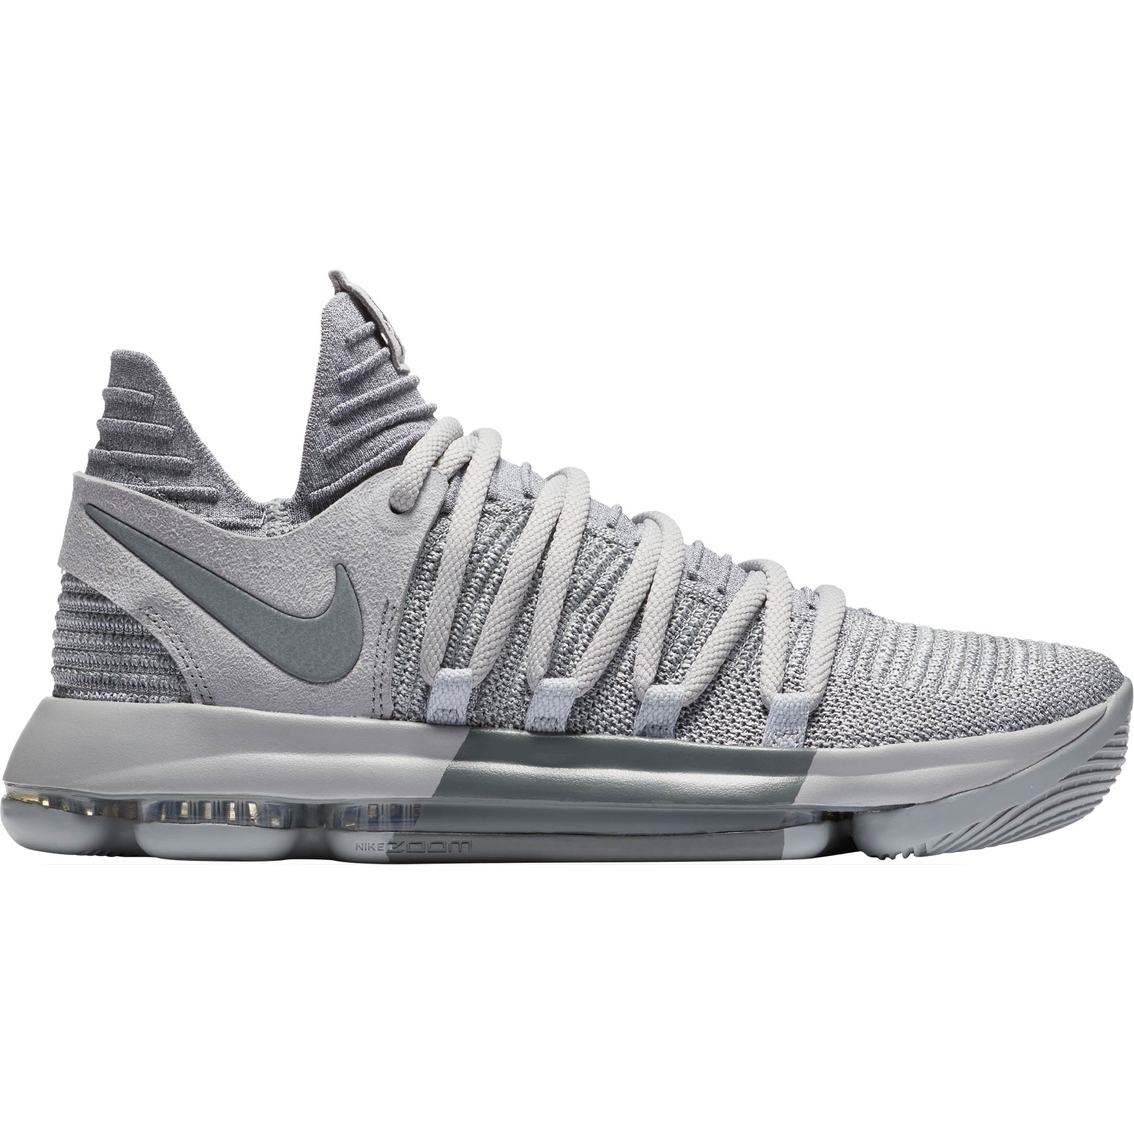 b1be6895ff18 Nike Men s Zoom Kd 10 Basketball Shoes